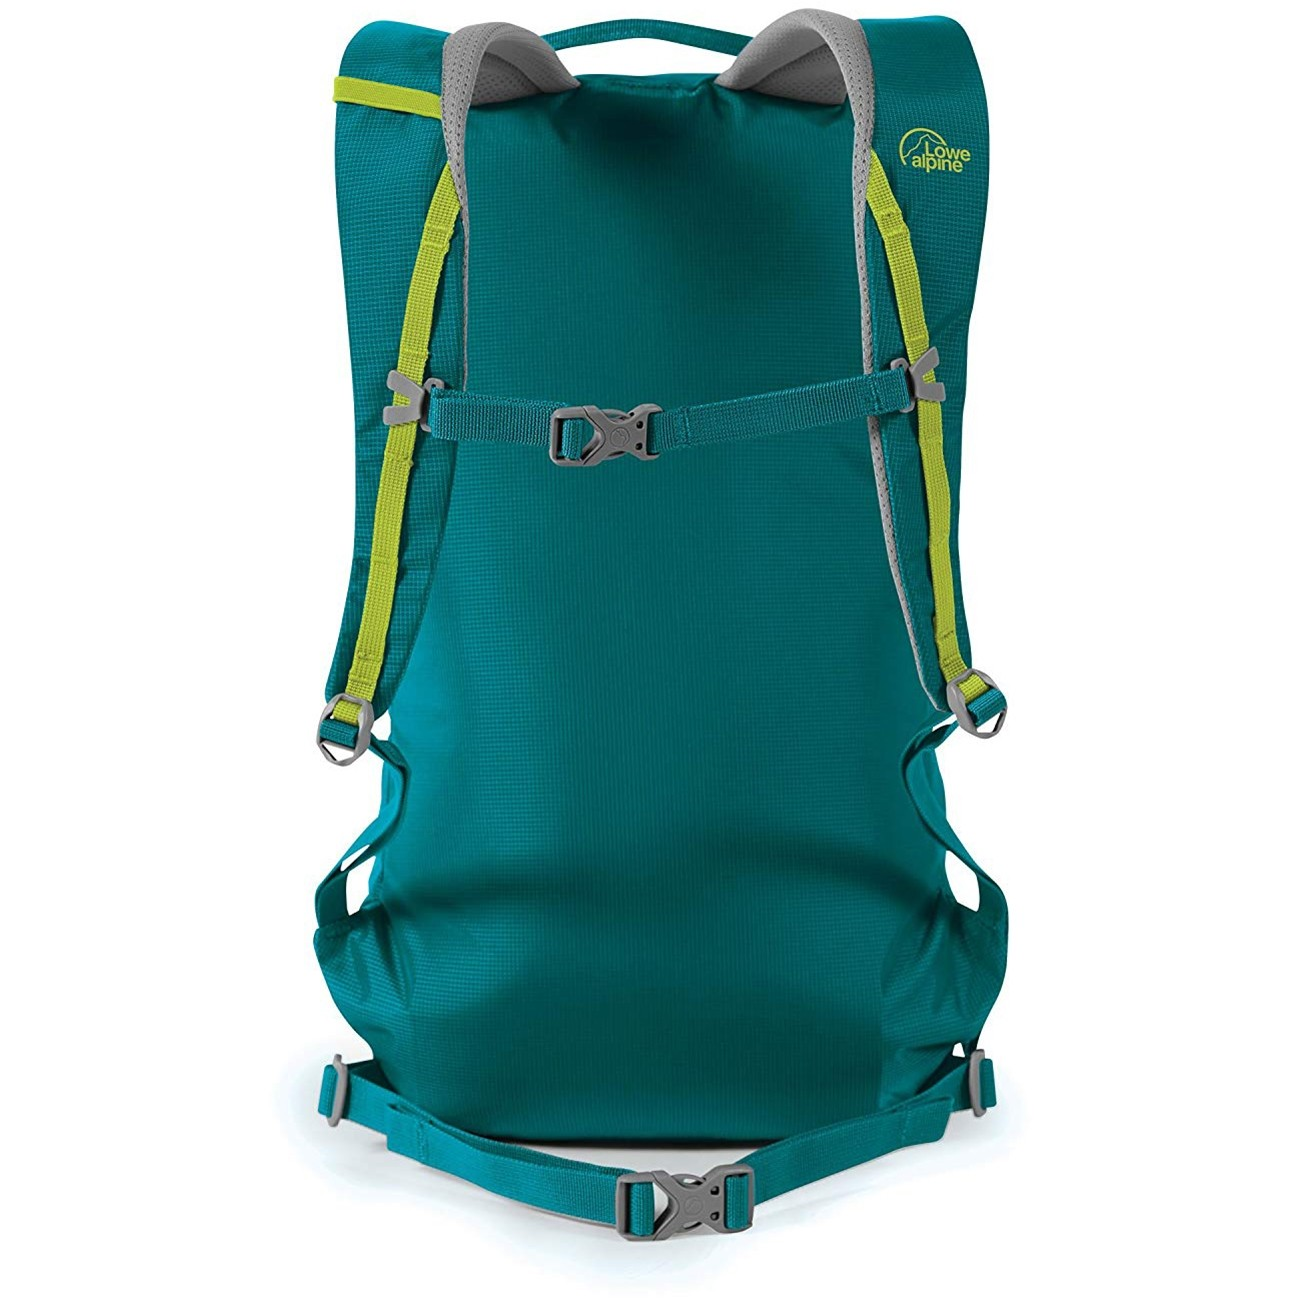 Lowe Alpine Ignite 15 Rucksack - Shaded Spruce - Back System